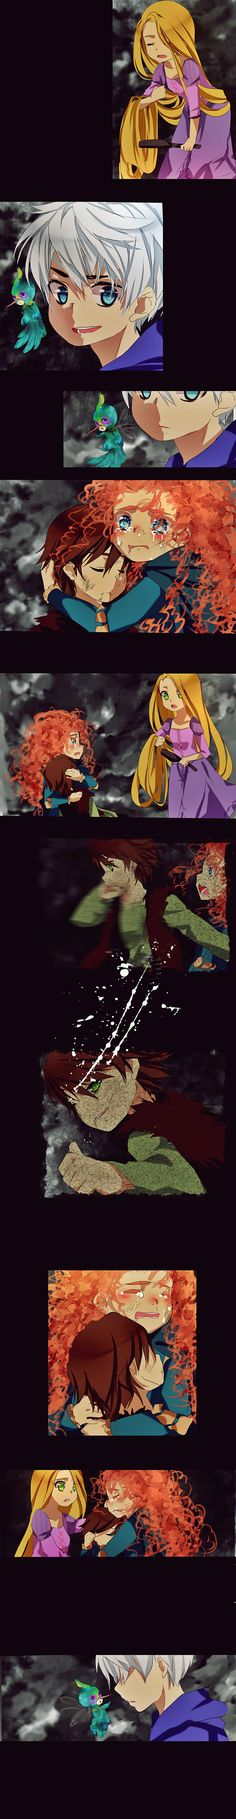 rotbtd comic 2 by ~temiji on deviantART. Poor Hiccup. Don't worry guys, he's not dead! Wake up Hiccup! :-/